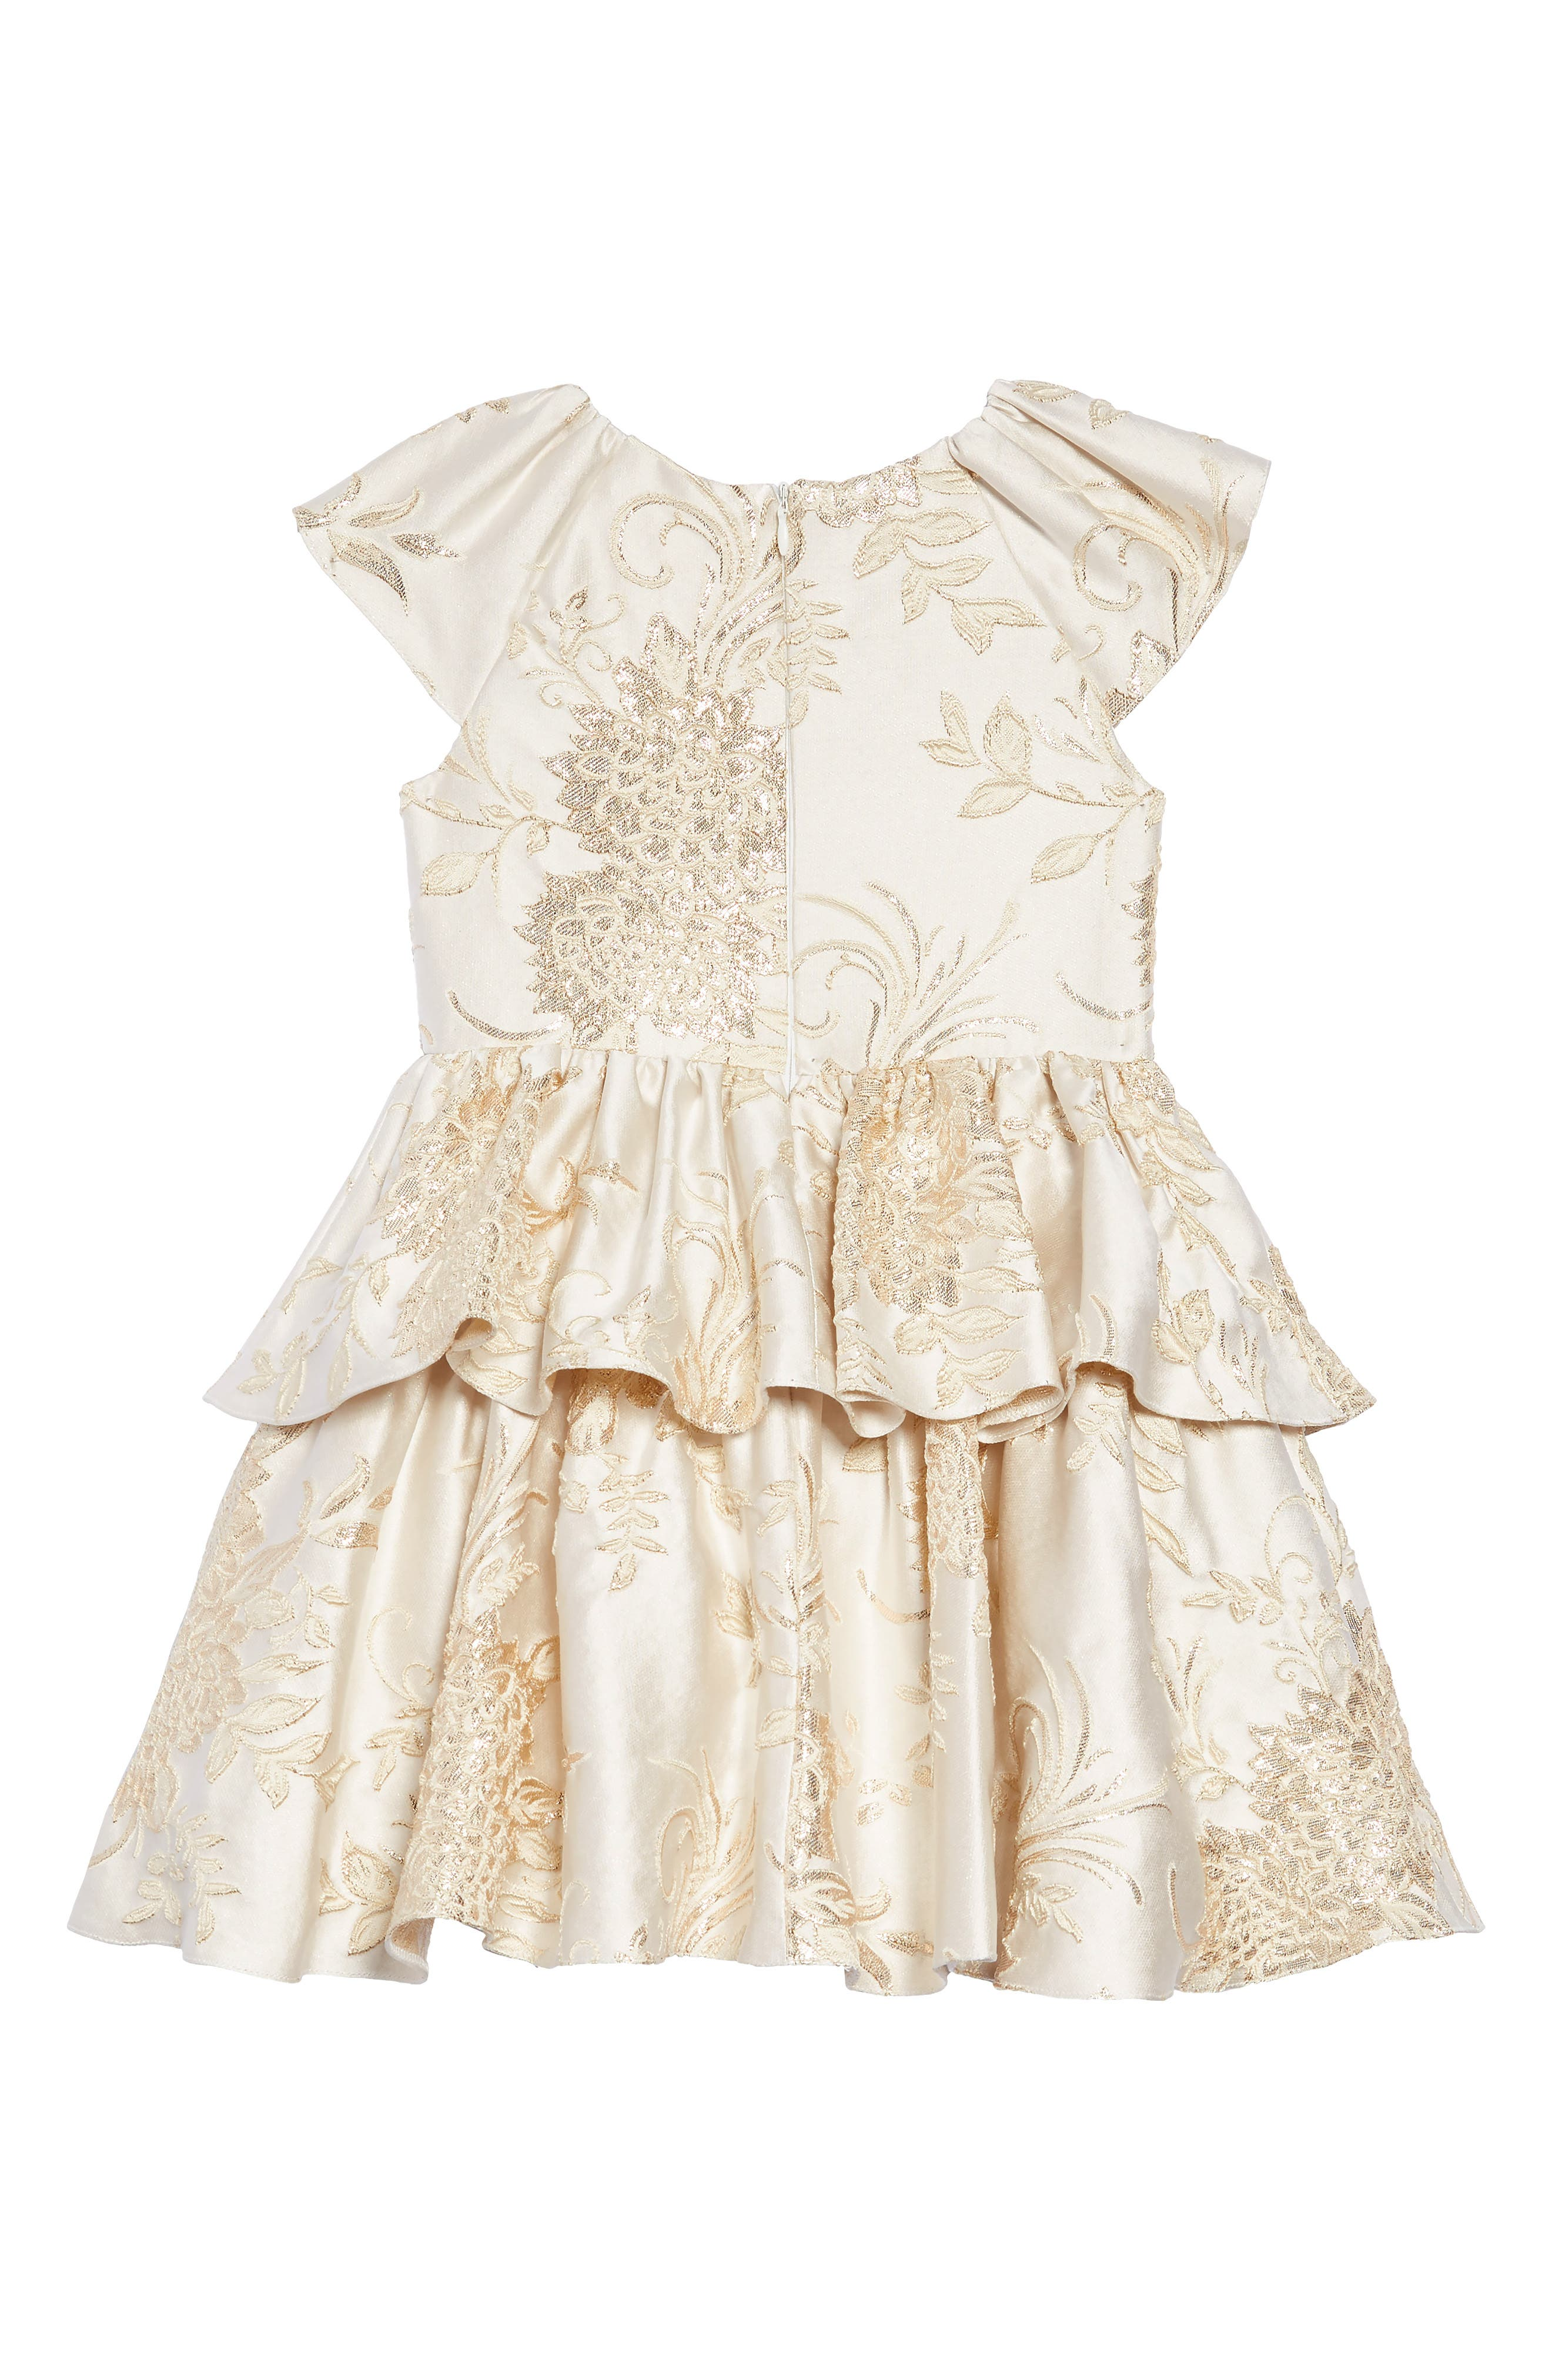 Brocade Dress,                             Alternate thumbnail 2, color,                             IVORY/ GOLD